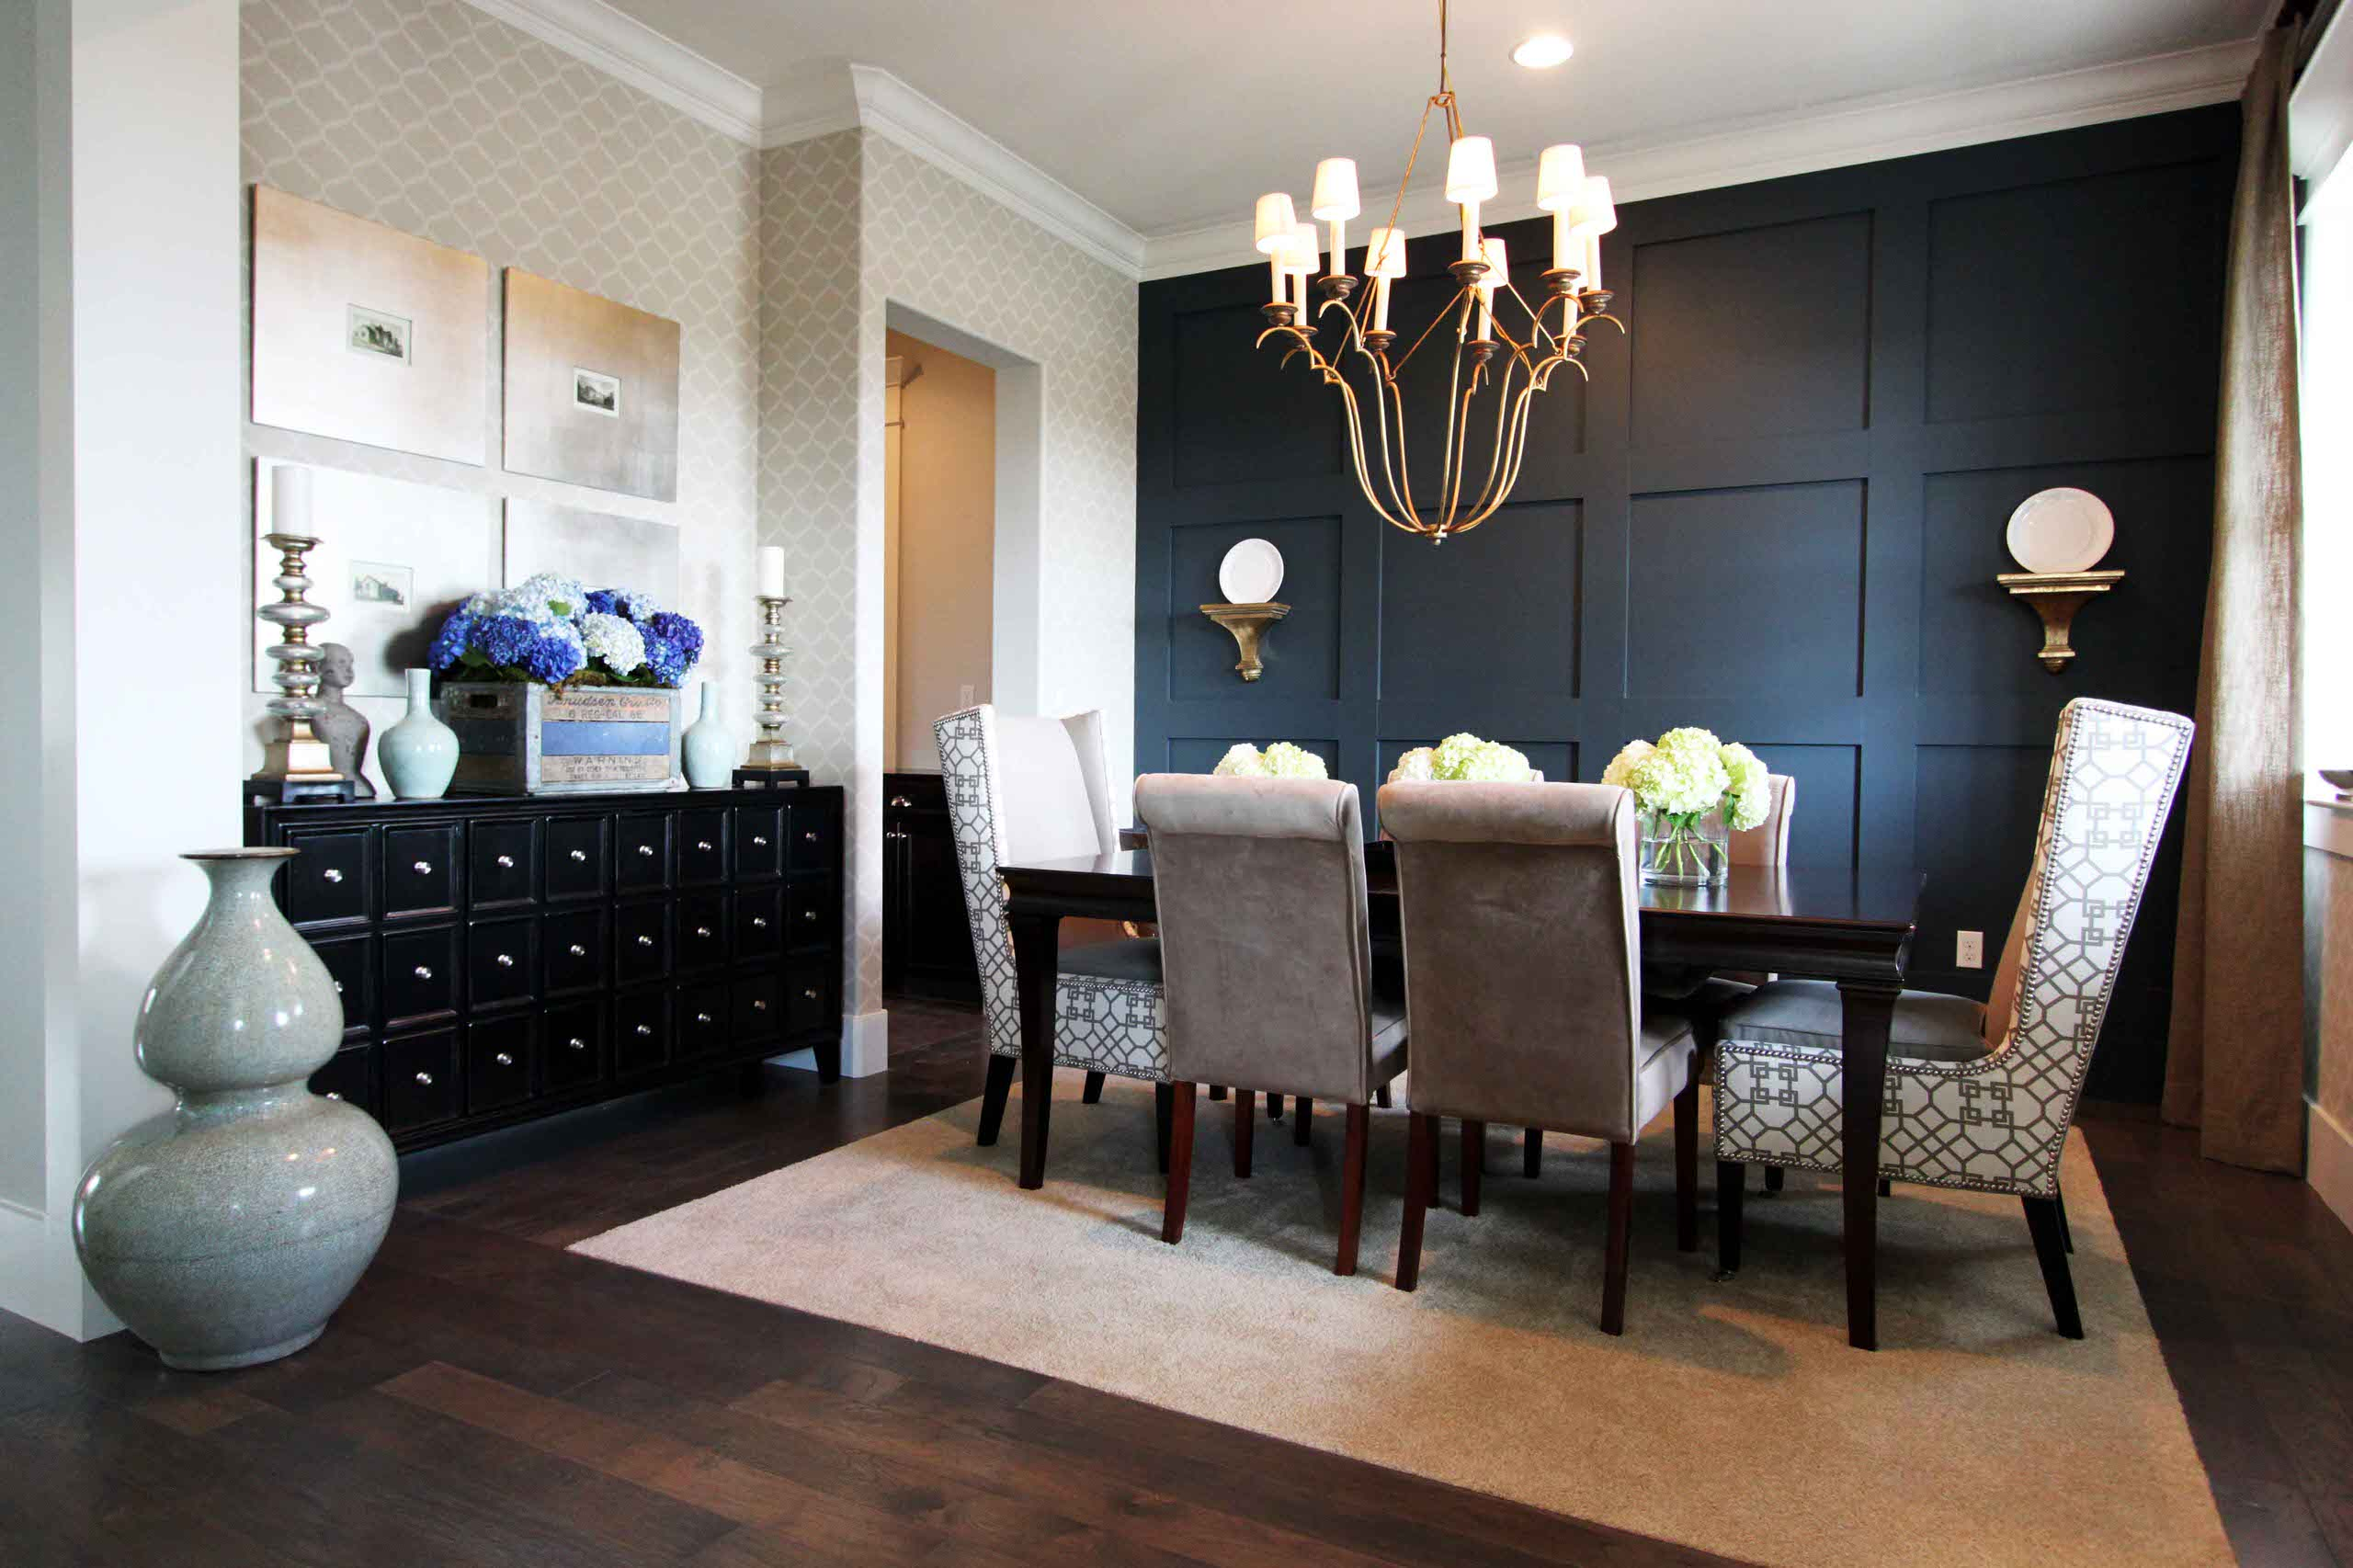 75 Beautiful Contemporary Dining Room Pictures Ideas March 2021 Houzz